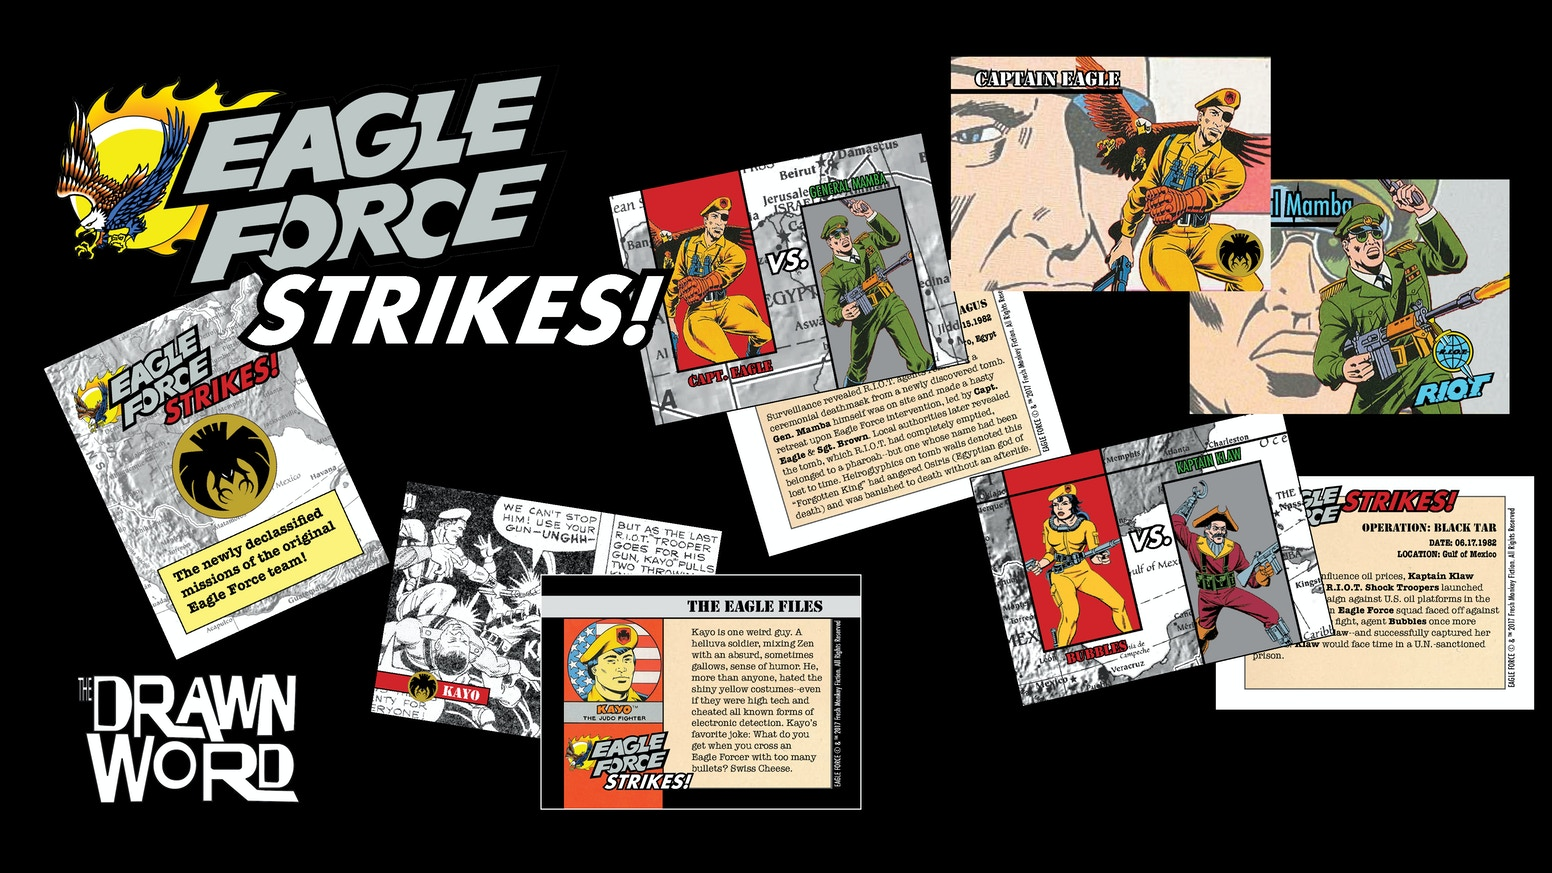 Learn the secrets of Eagle Force's past, straight from their classified files!